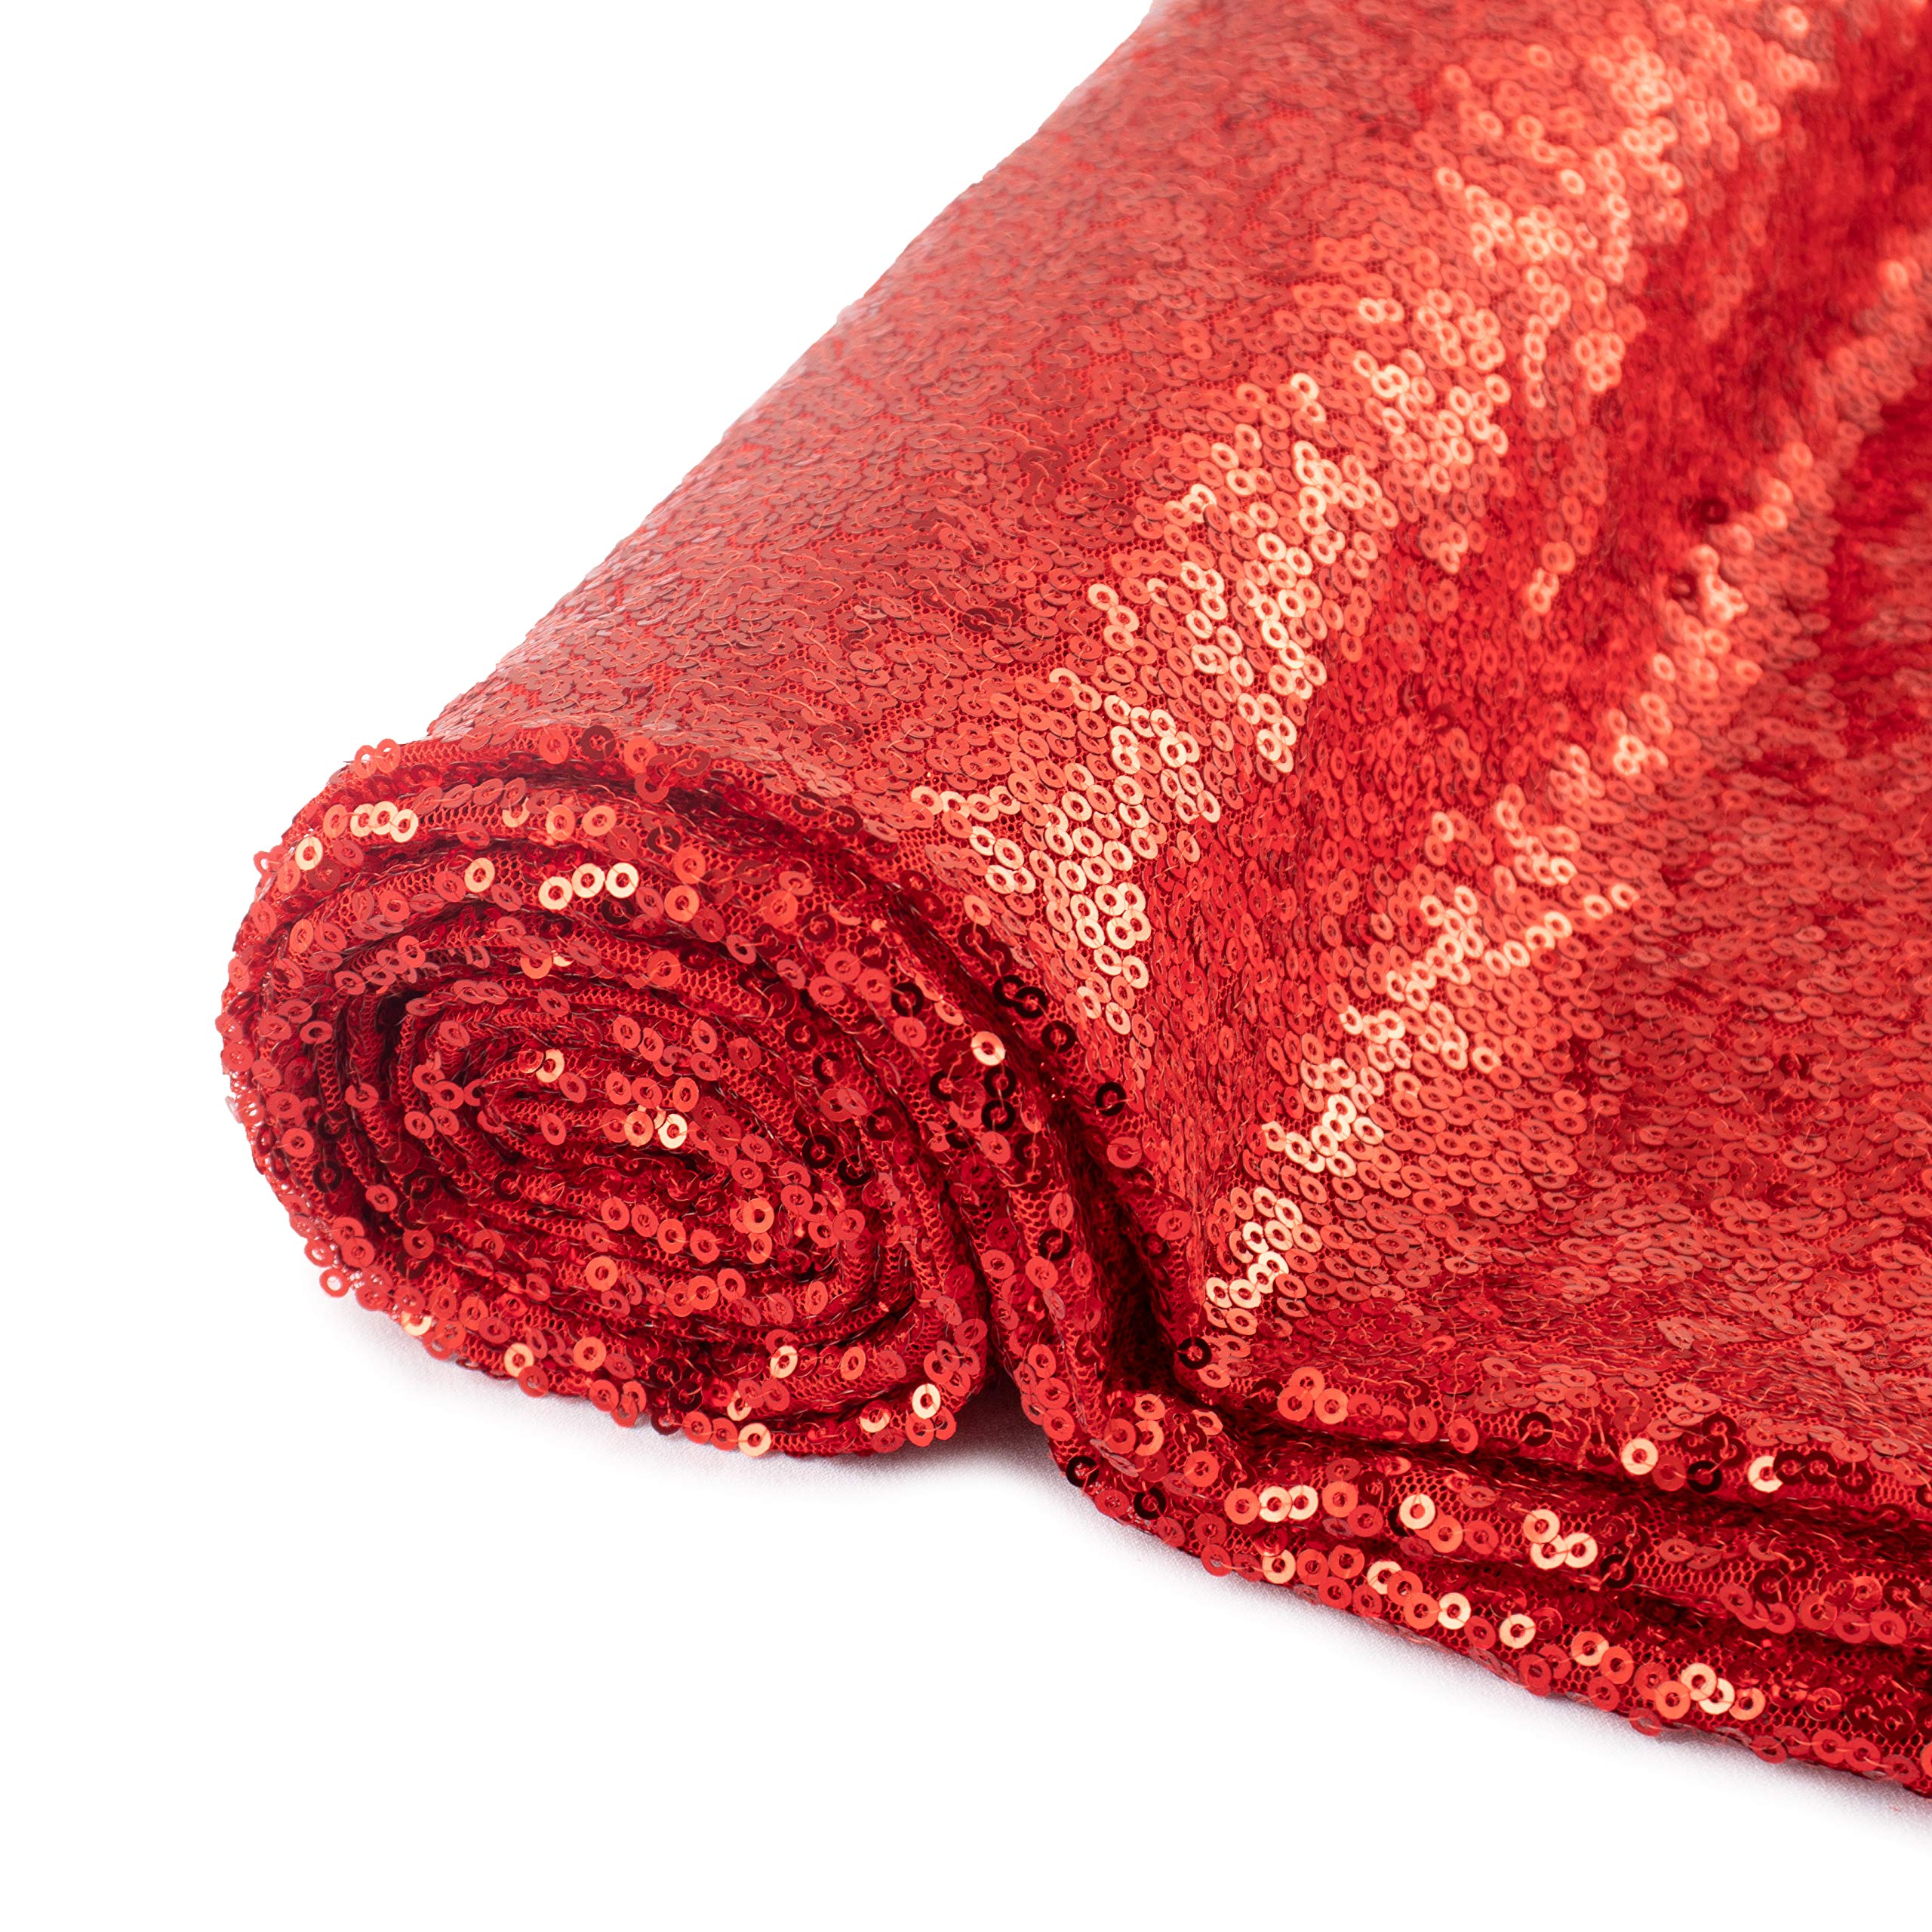 Pardecor Sequin Fabric by The Yard Red 1 Yard Sparkly Fabric Mesh Sequins Fabric for Sewing Clothing and Making Tablecloth Table Runner Wedding Party Decor